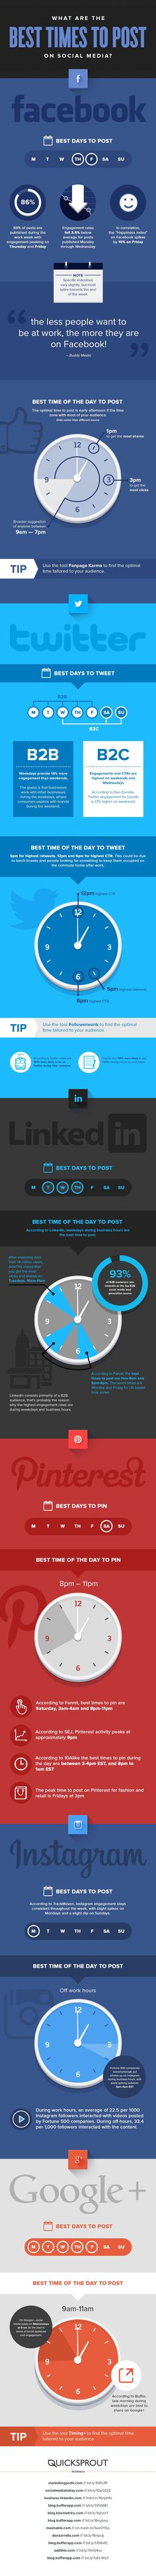 What are the BestTimes to post on social media #Infographic #socialmedia